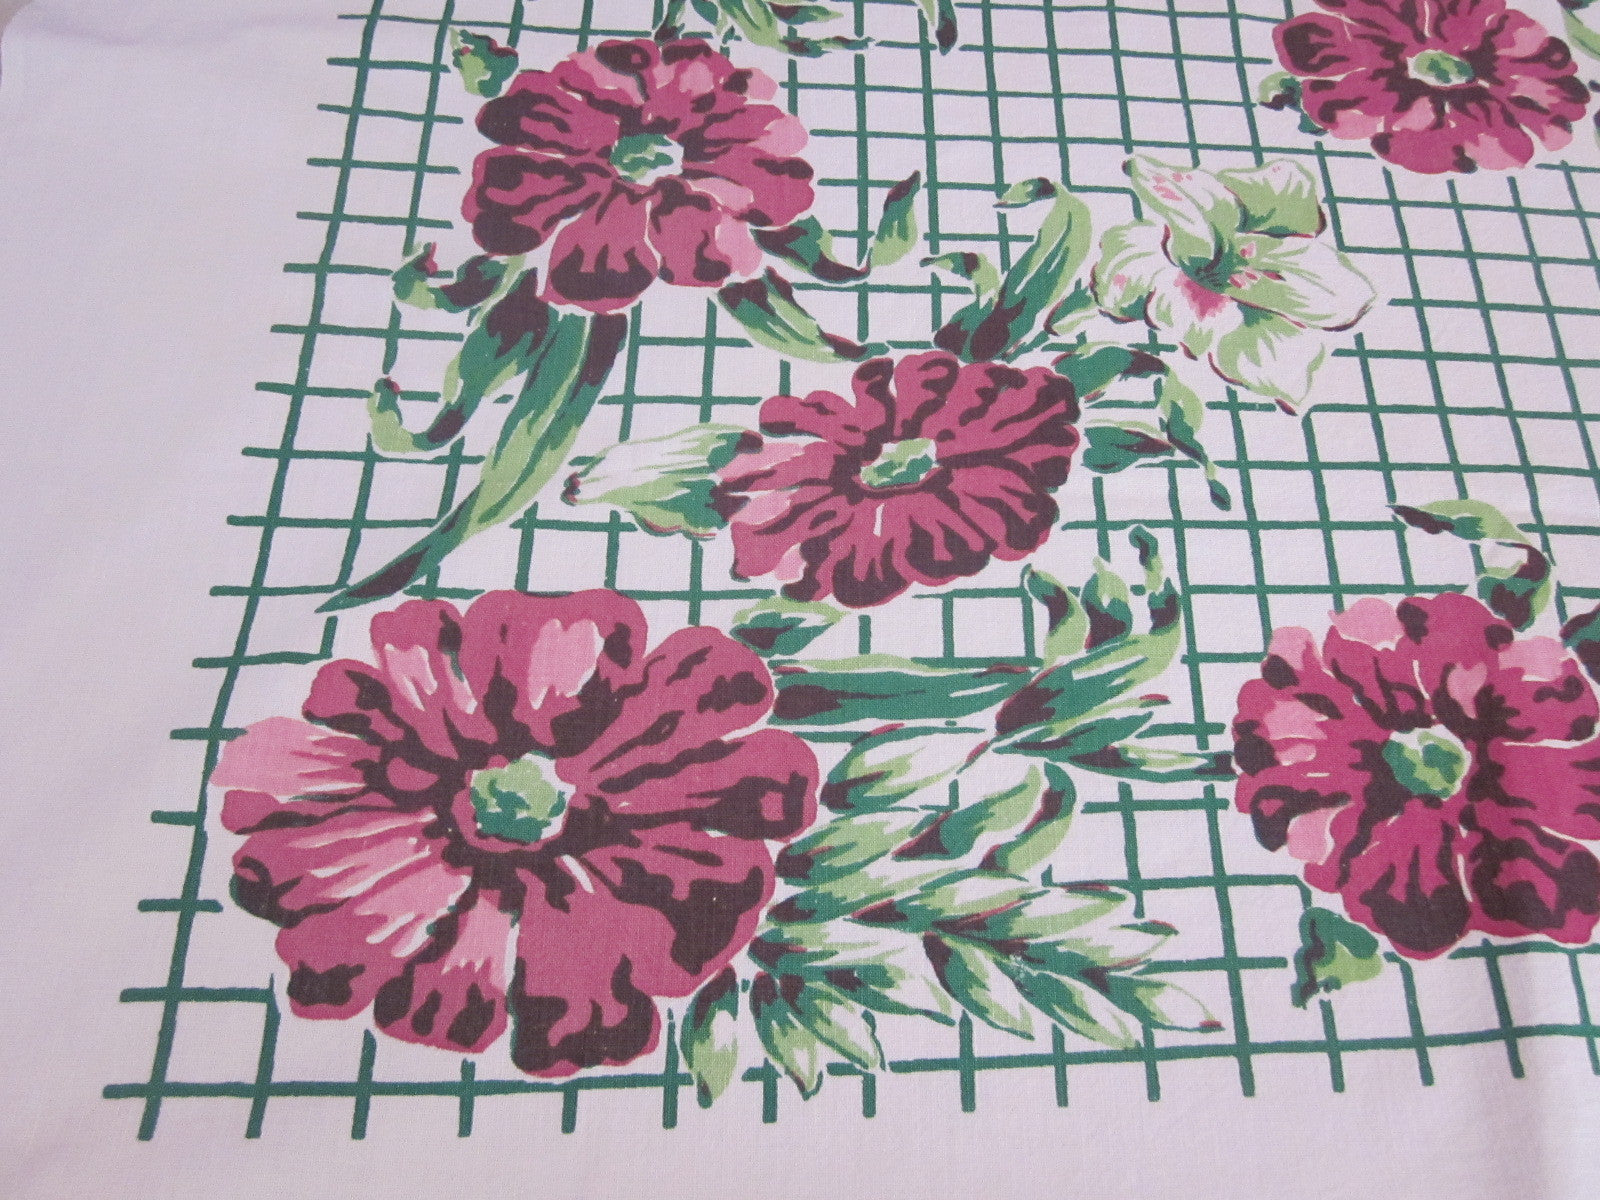 Startex Magenta Flowers on Green Grid Floral Vintage Printed Tablecloth (52 X 47)